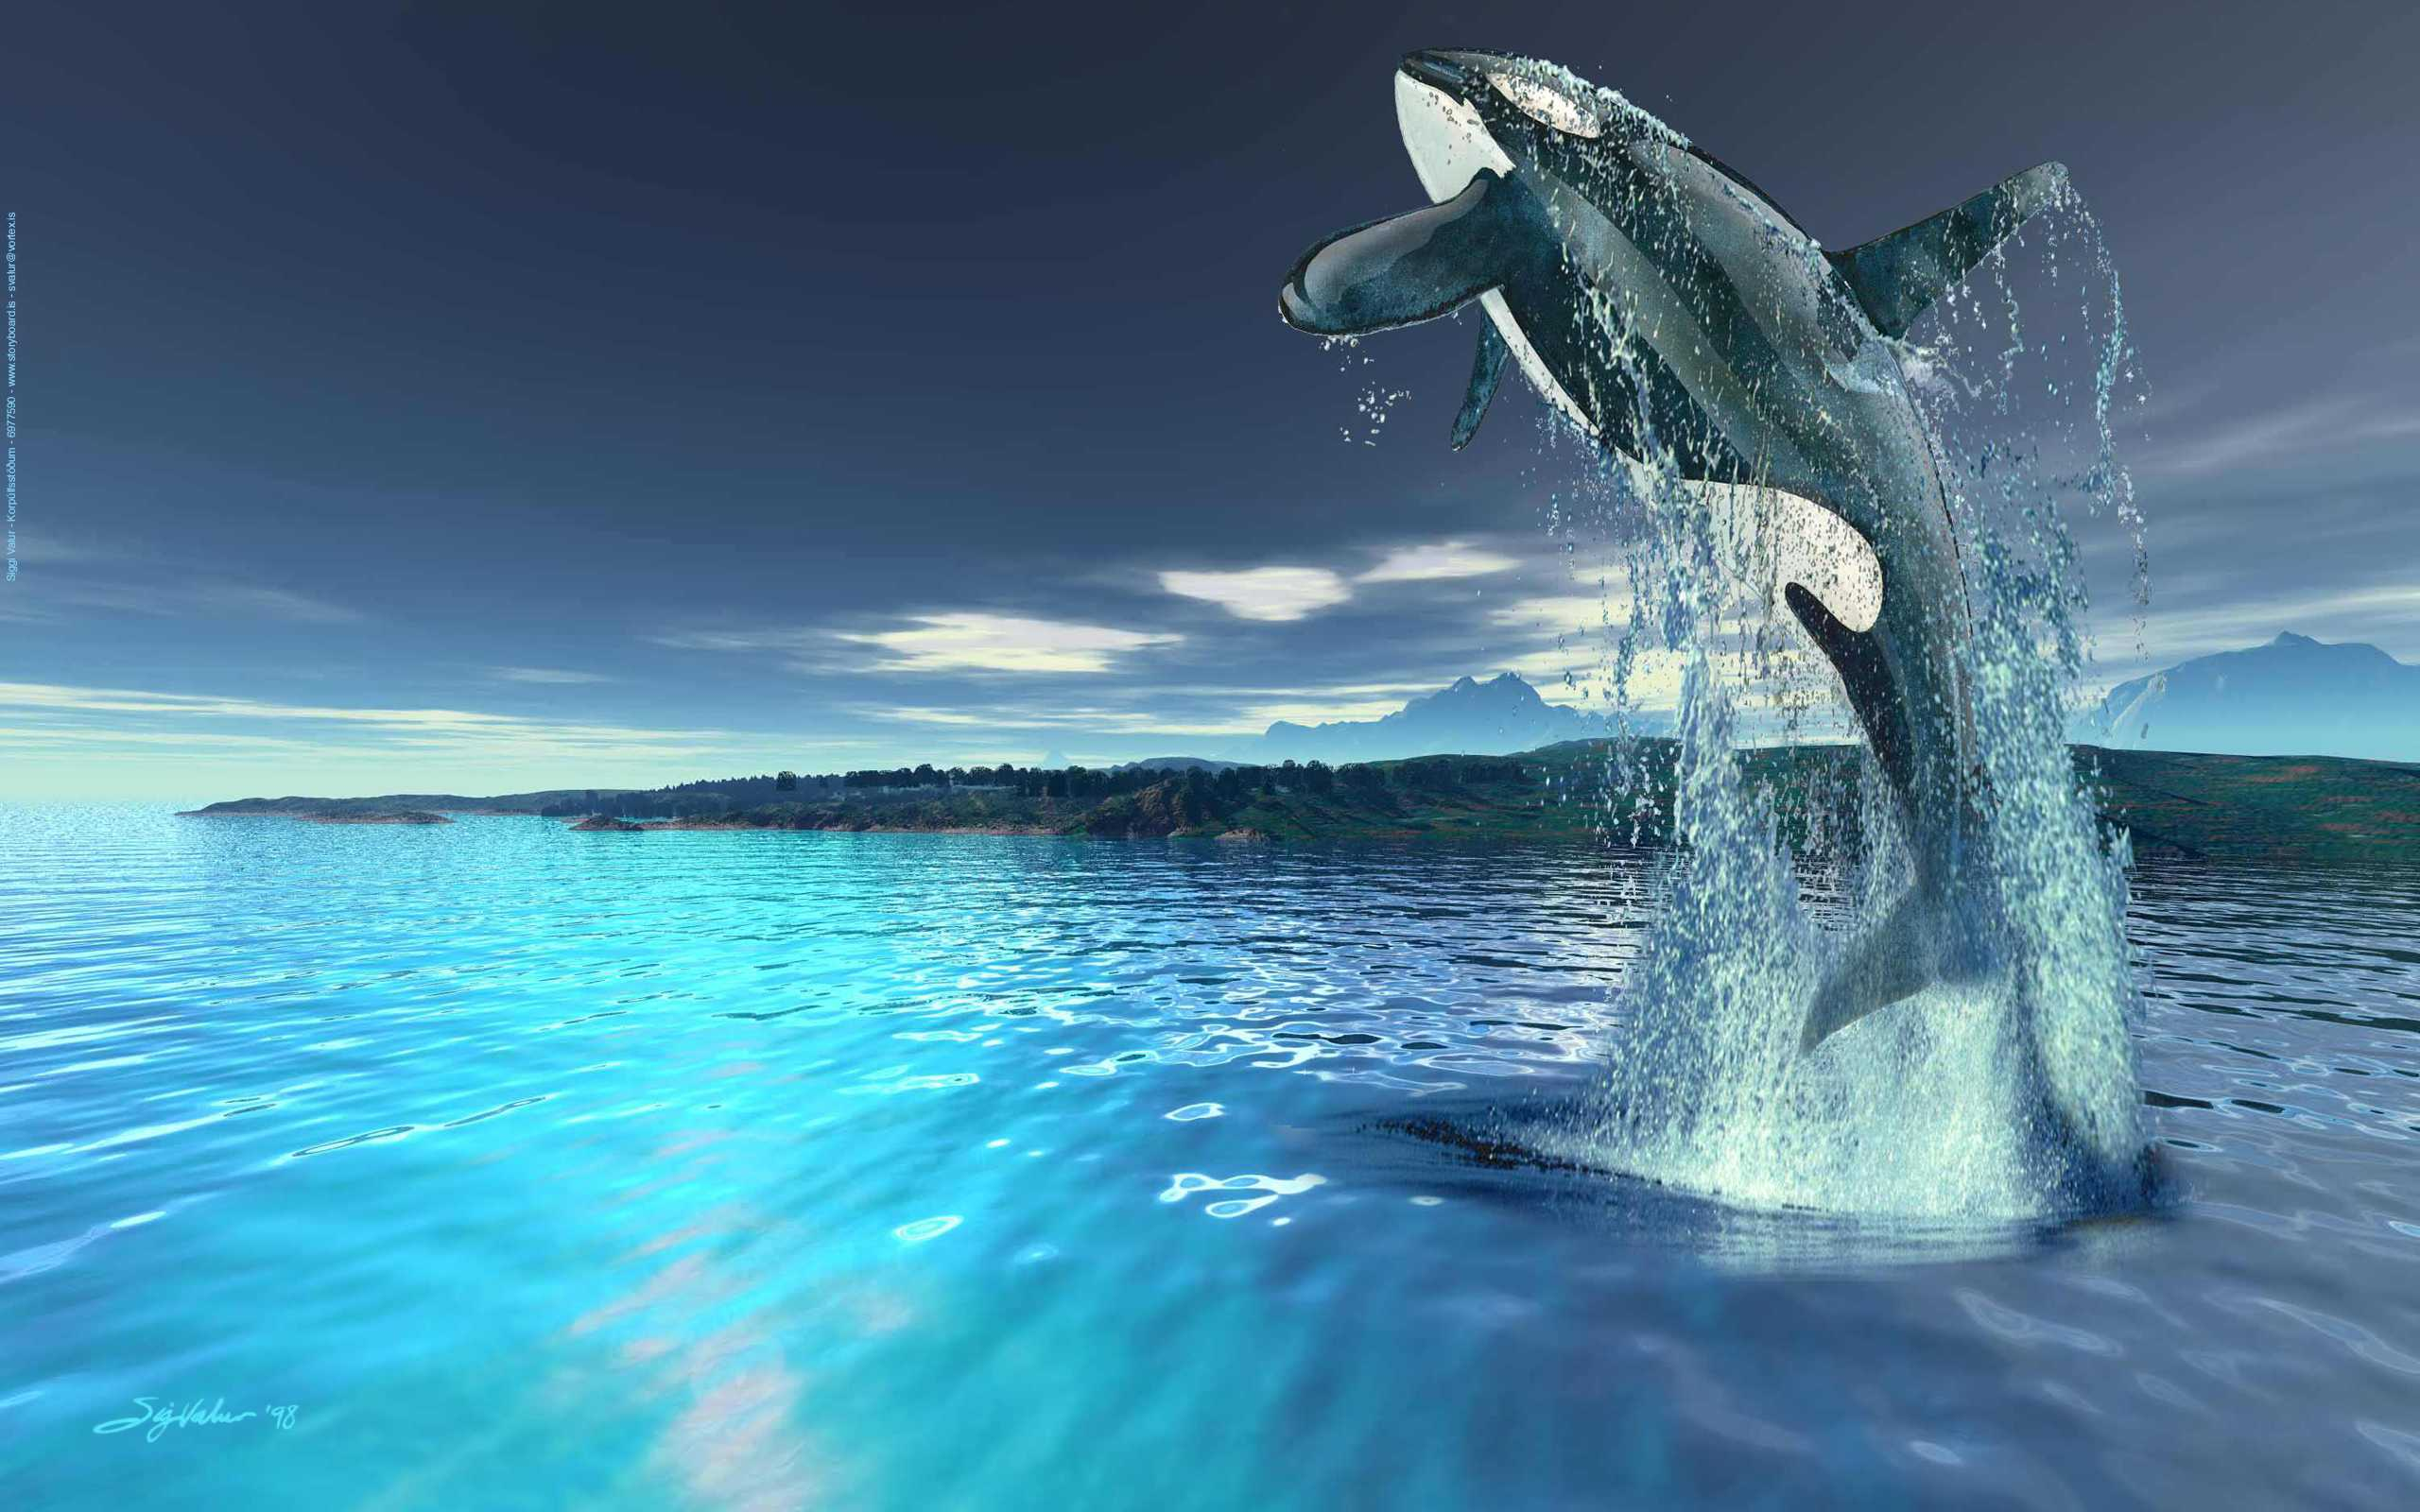 Whale wallpaper - photo#11